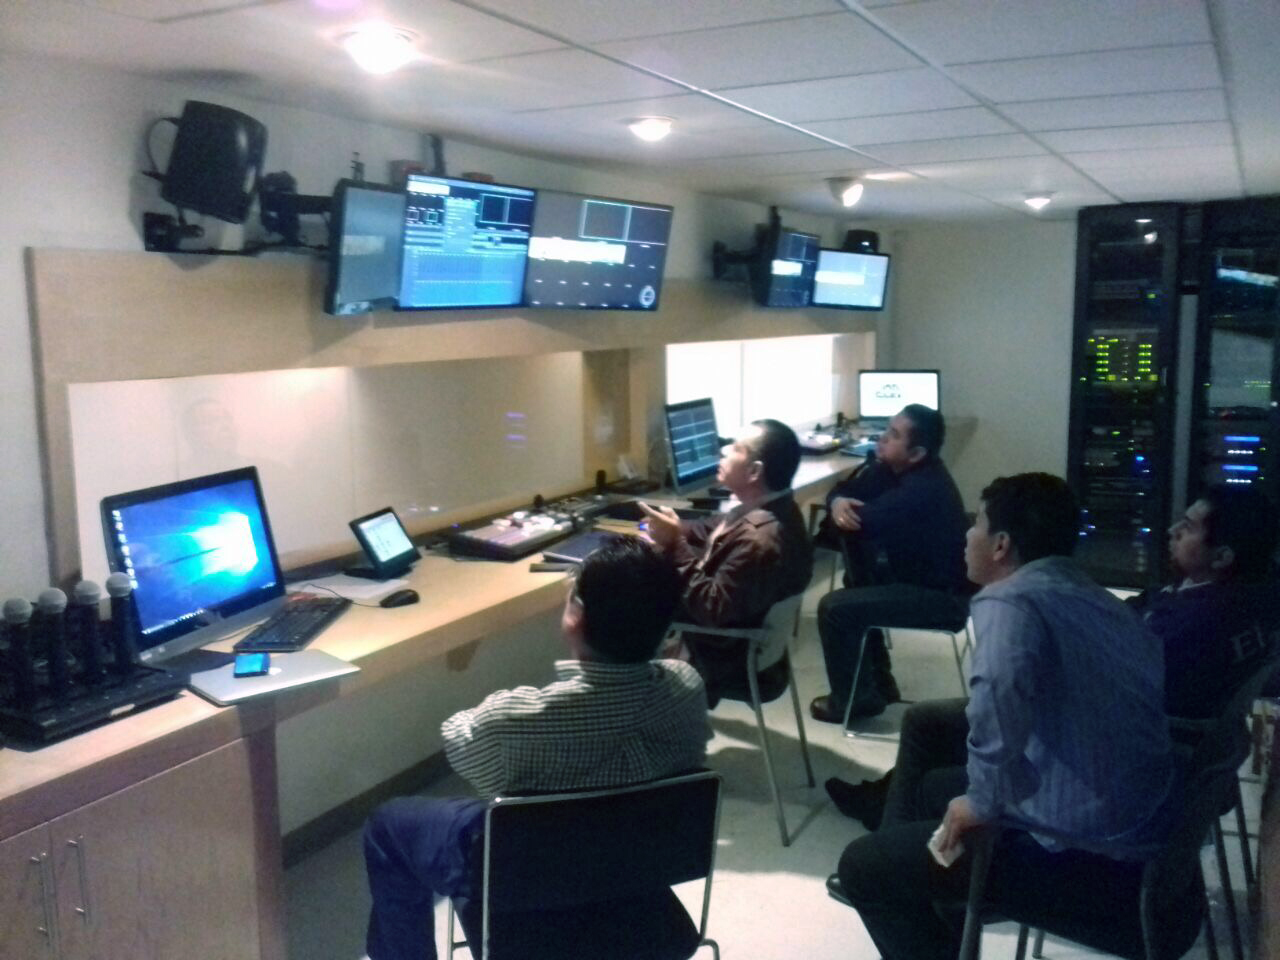 ColMex technicians monitoring and operating the XTP system in shared control room